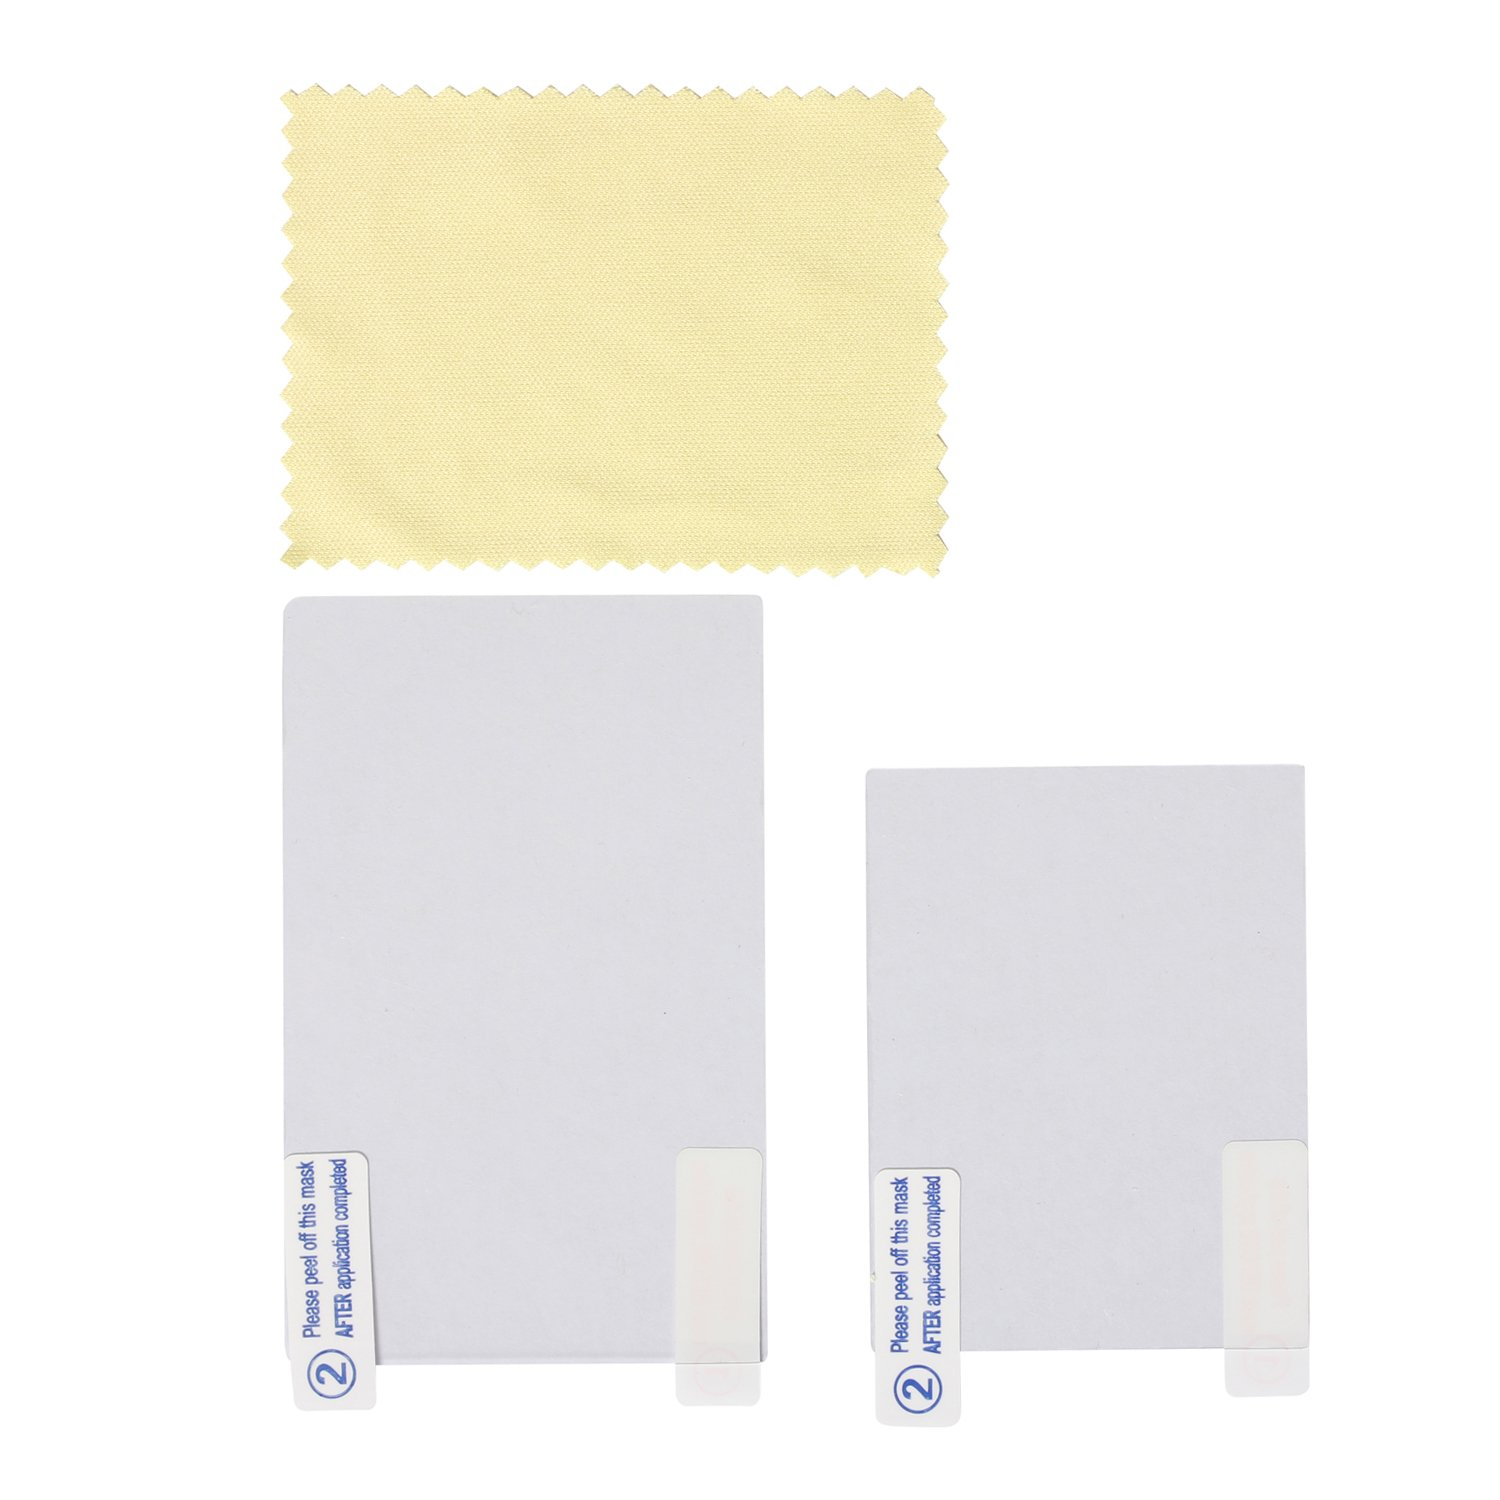 Timorn Screen Protector Top and Bottom Cover for New 3DS with cleaning cloth (10sets)